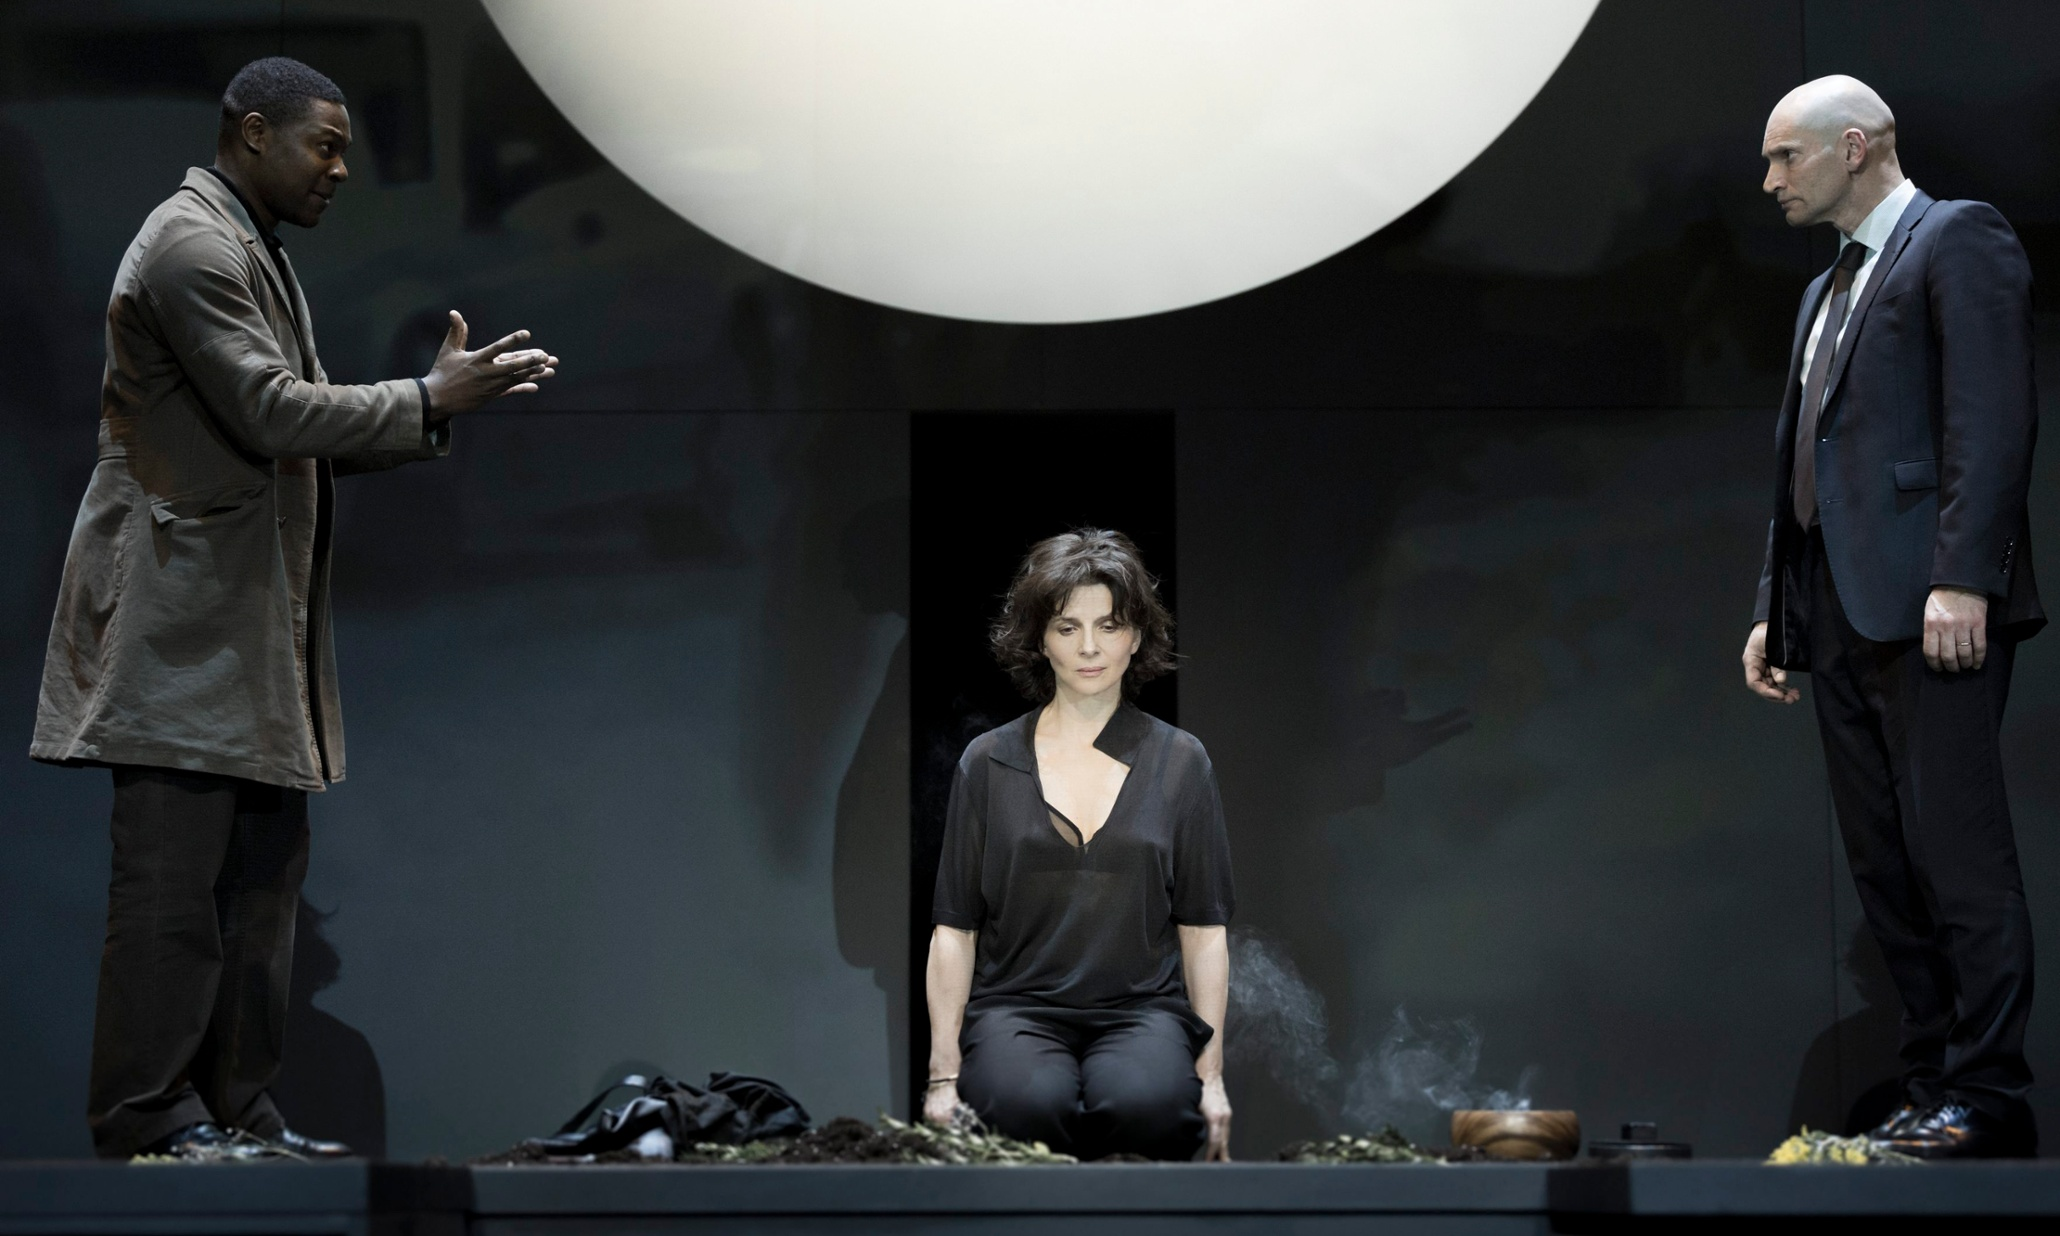 "<a href=""http://europeanstages.org/2015/06/25/grief-family-p…hoves-antigone/"">Grief, Family, Politics, but no Passion: Ivo van Hove's Antigone</a>"